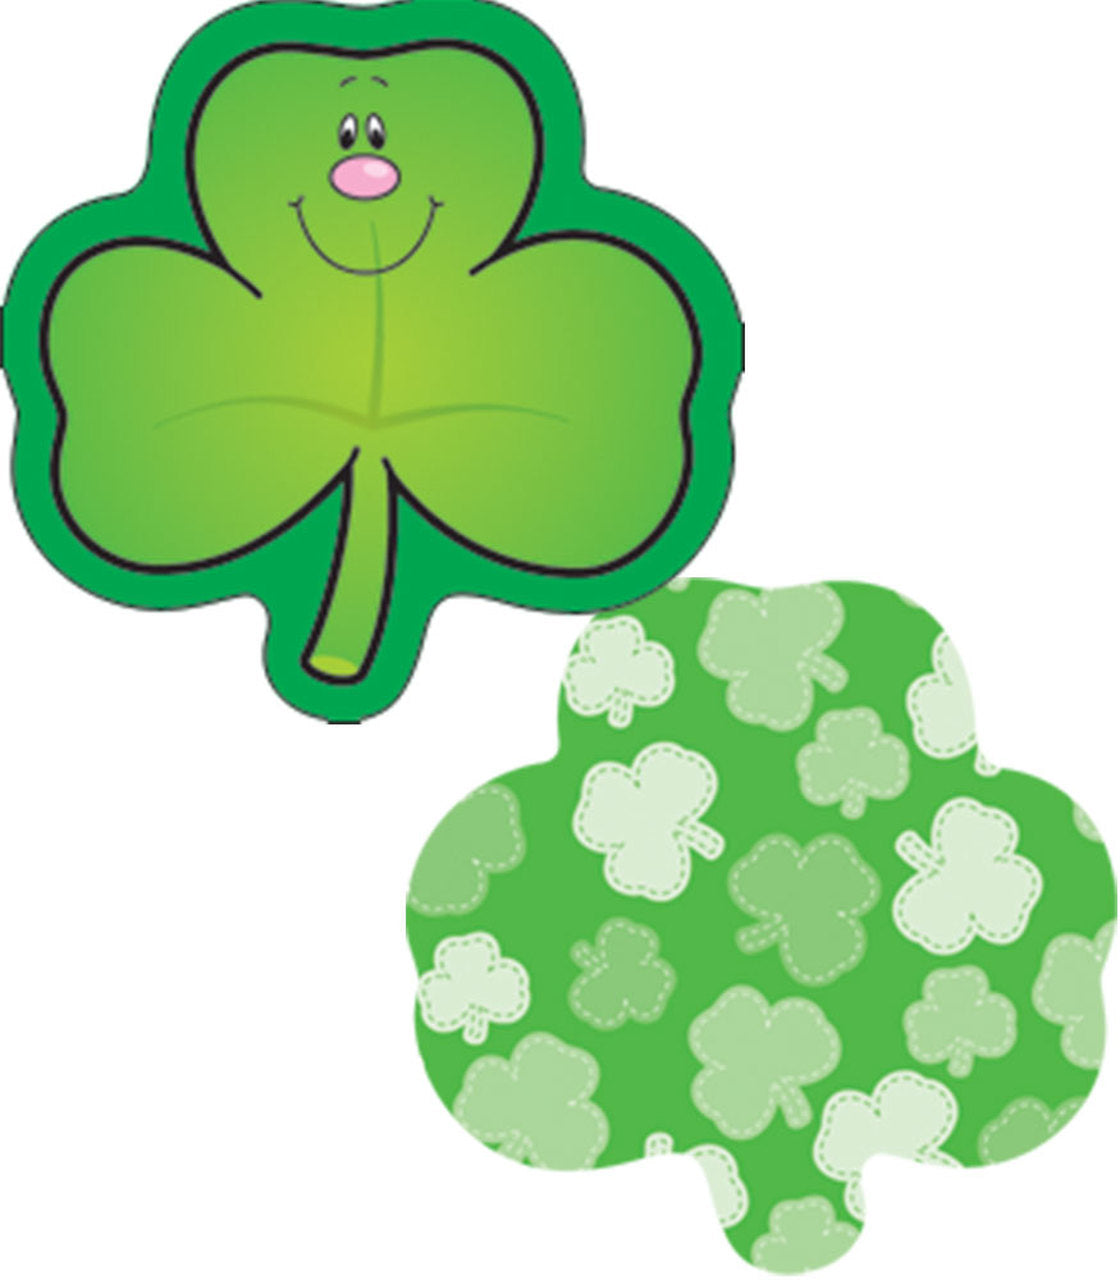 Carson Dellosa Shamrock Mini Cutouts  36 2-sided Shamrocks (CD-120031)